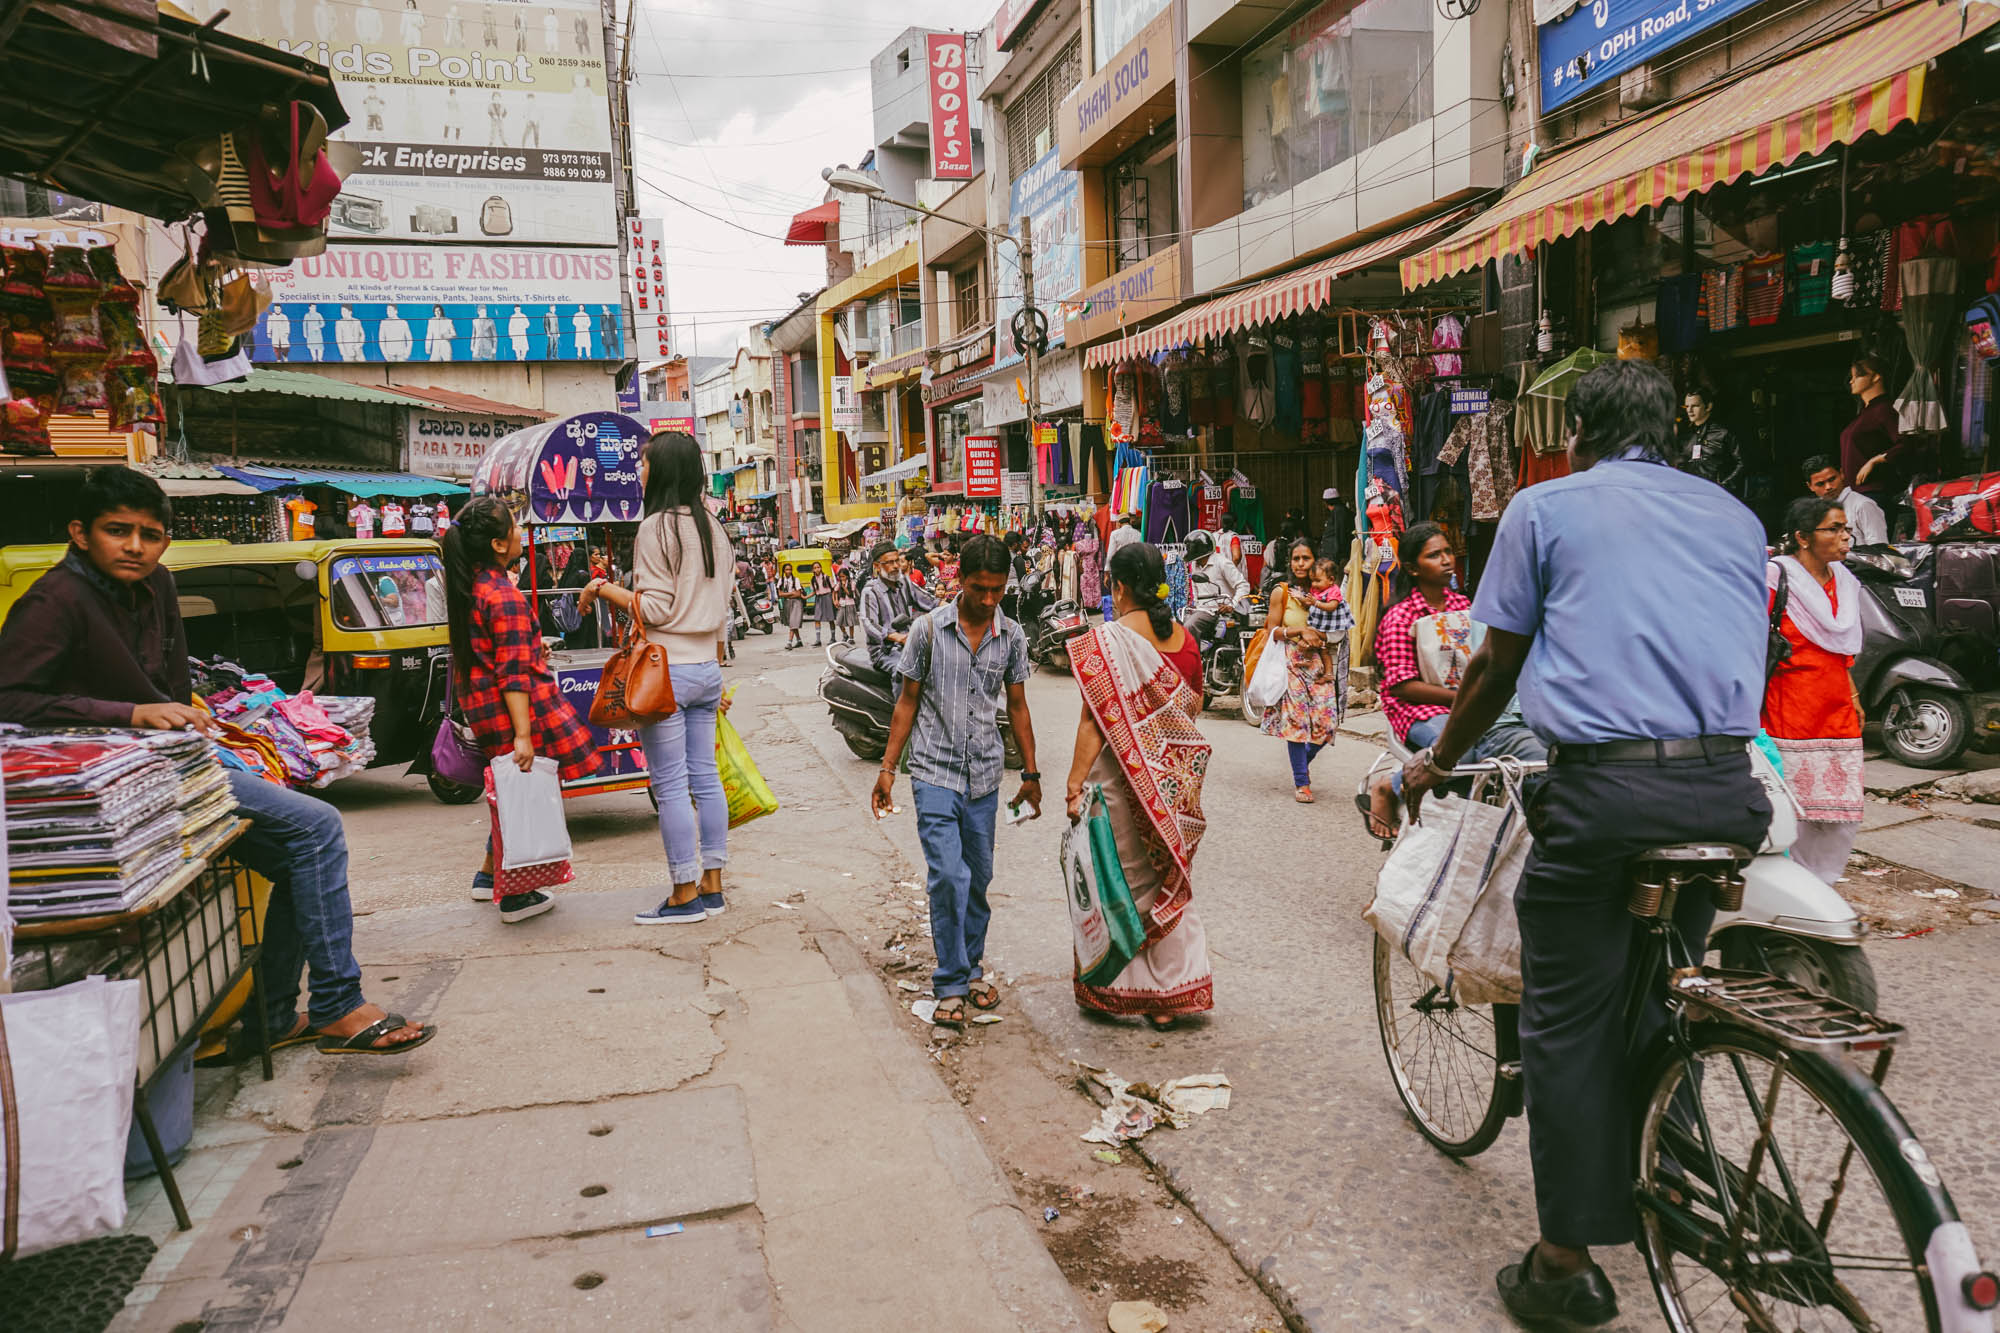 The hustle and bustle on Commercial Street in Bangalore